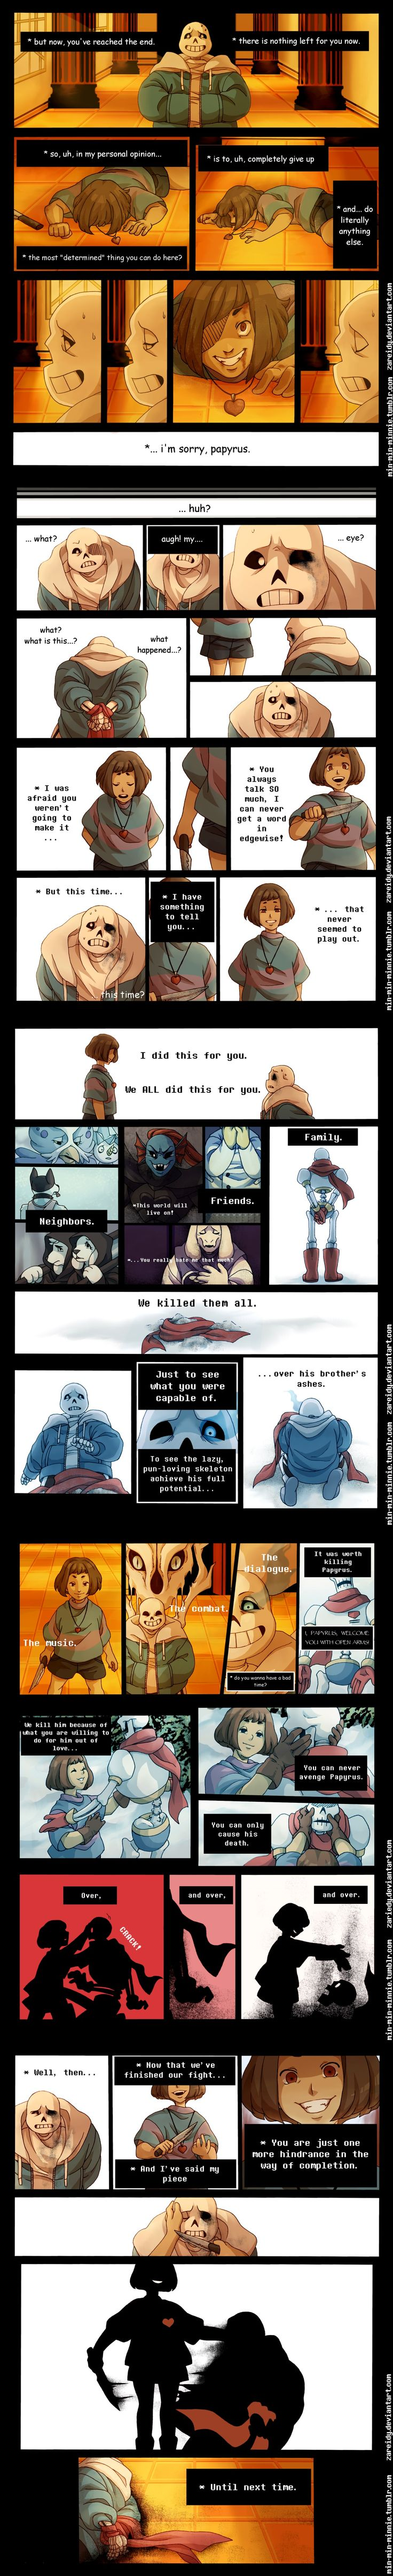 Sans, Chara, and the truth -- Undertale